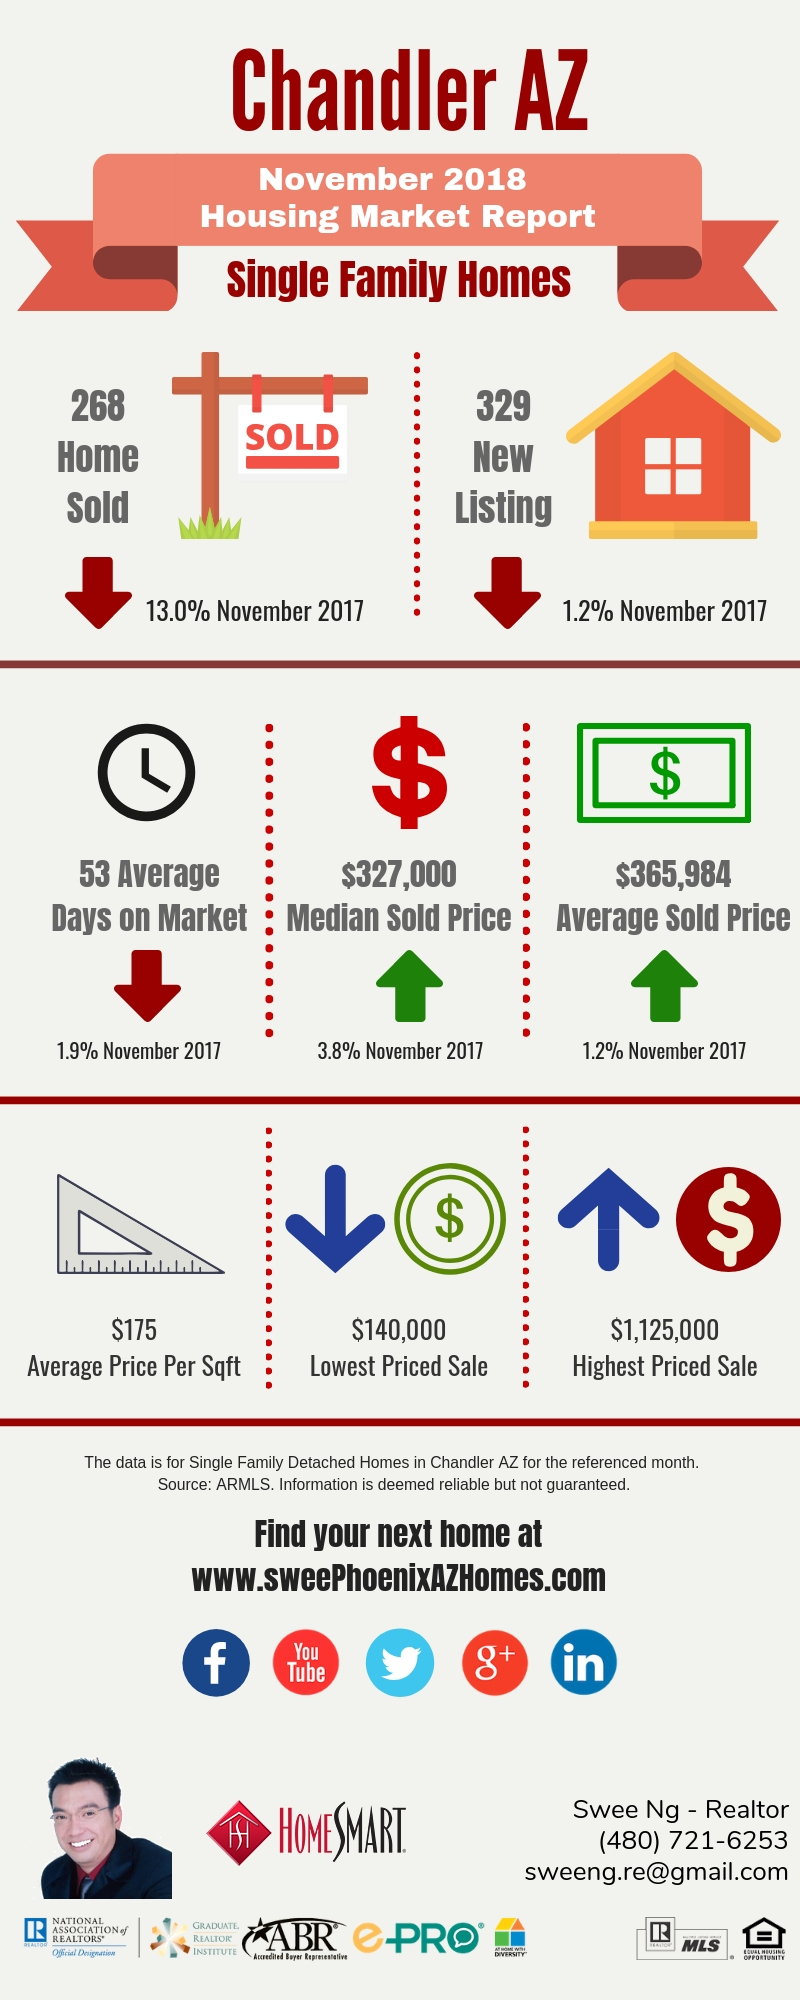 Chandler AZ Housing Market Update November 2018 by Swee Ng, House Value and Real Estate Listings